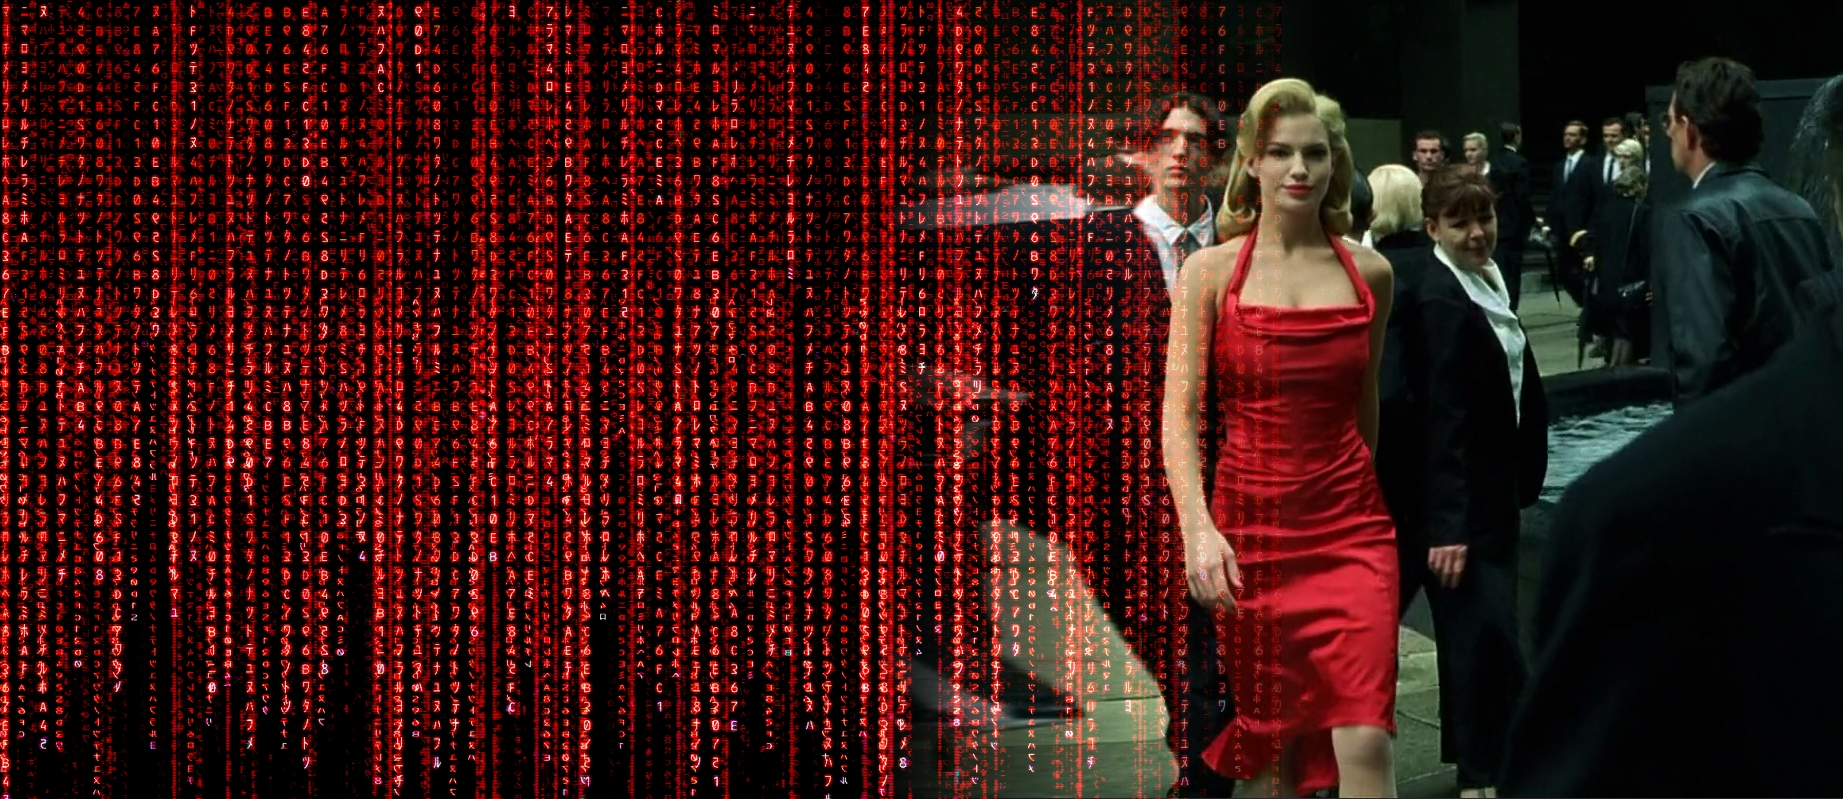 Girl in red dress matrix